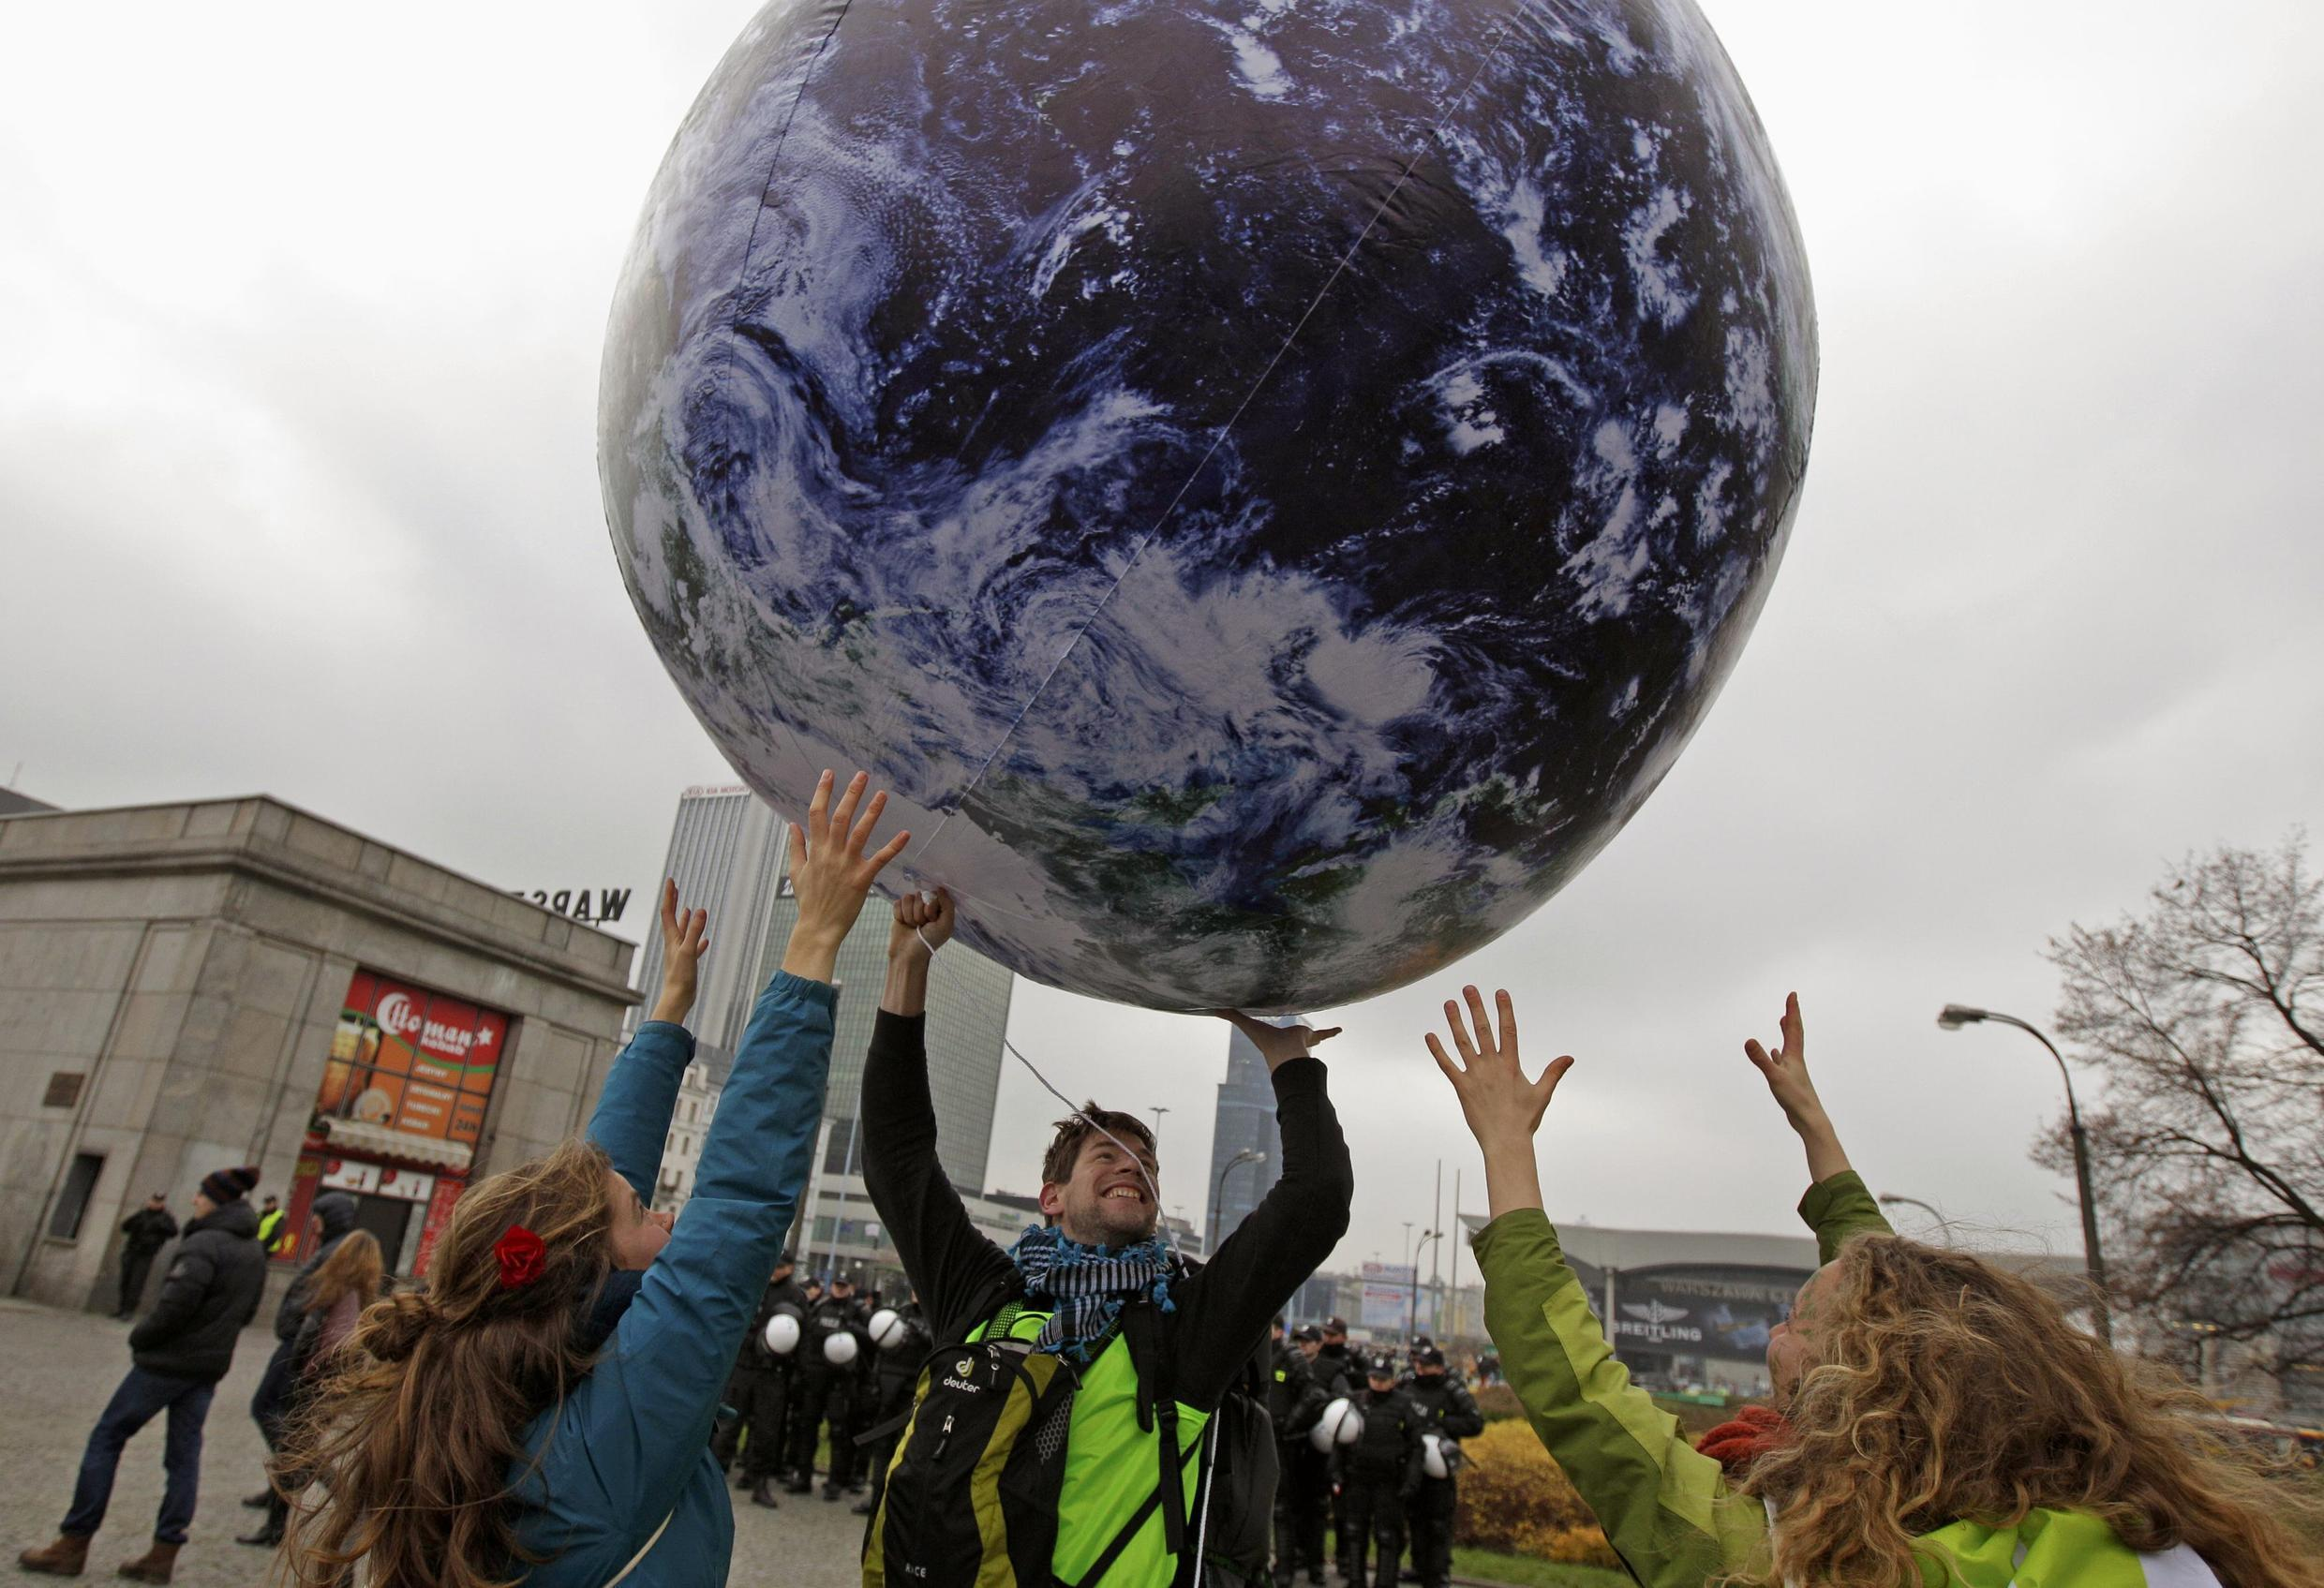 Environmental activists play with a giant globe on the streets in a rally demanding more action to battle climate change during the 19th conference of the United Nations Framework Convention on Climate Change